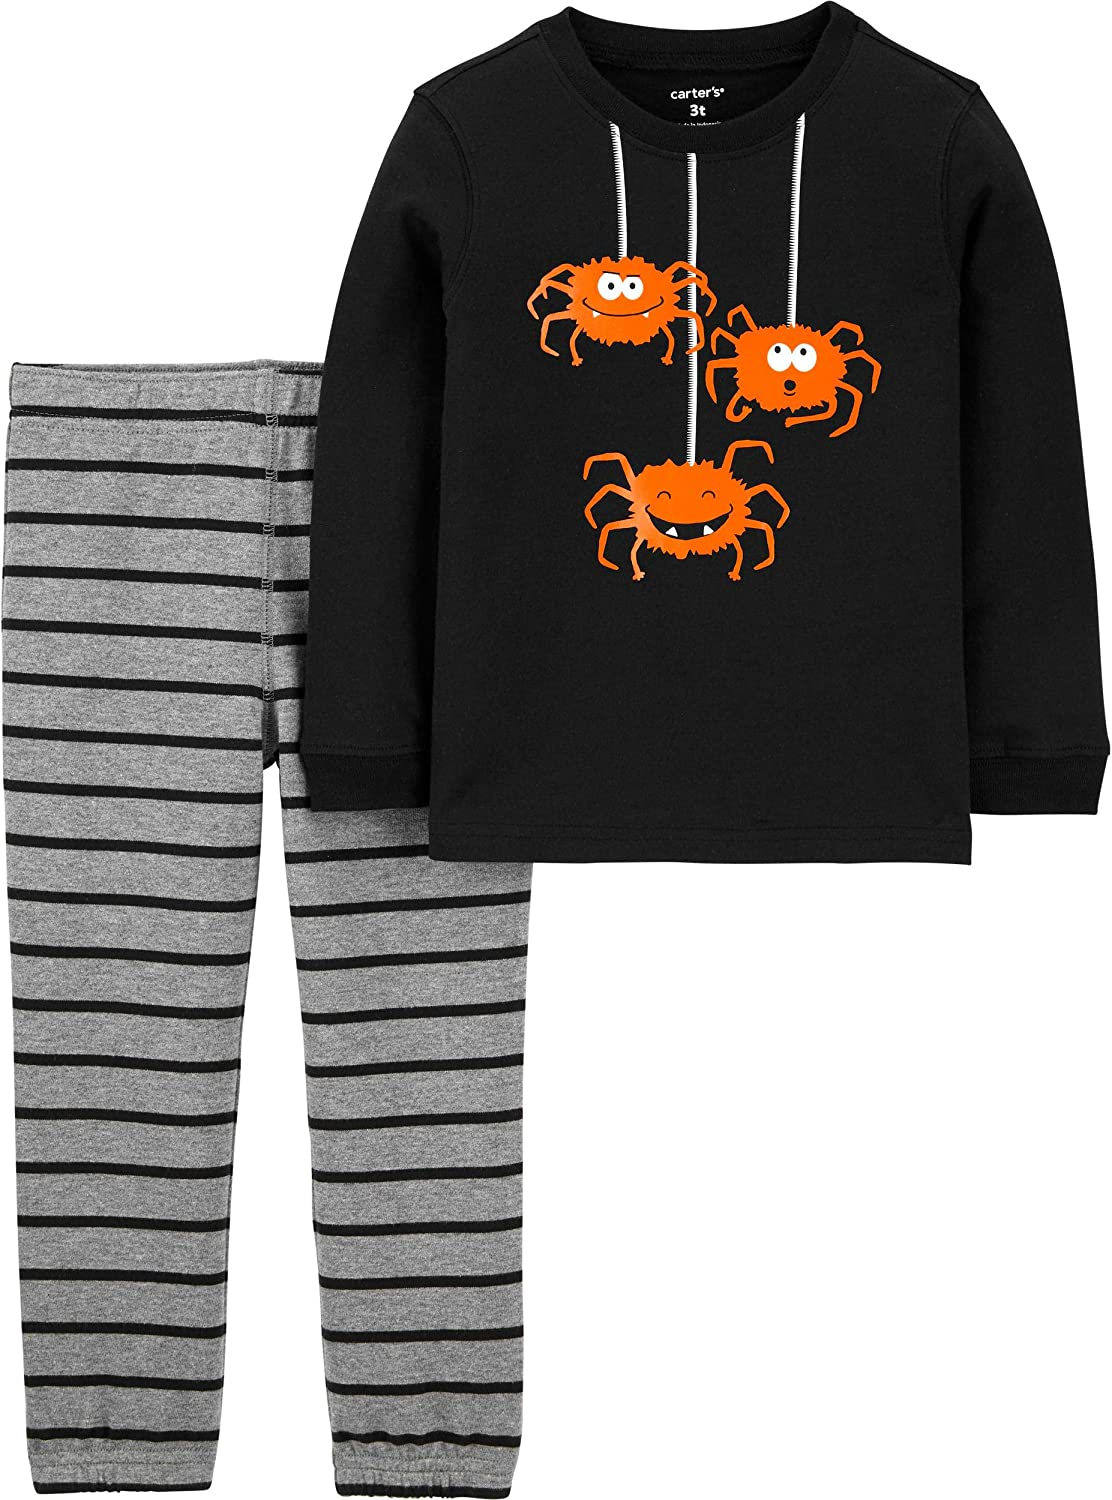 Carter's Baby Boys' Halloween 2-Pc Sets (3T, Black Spiders/Heather)